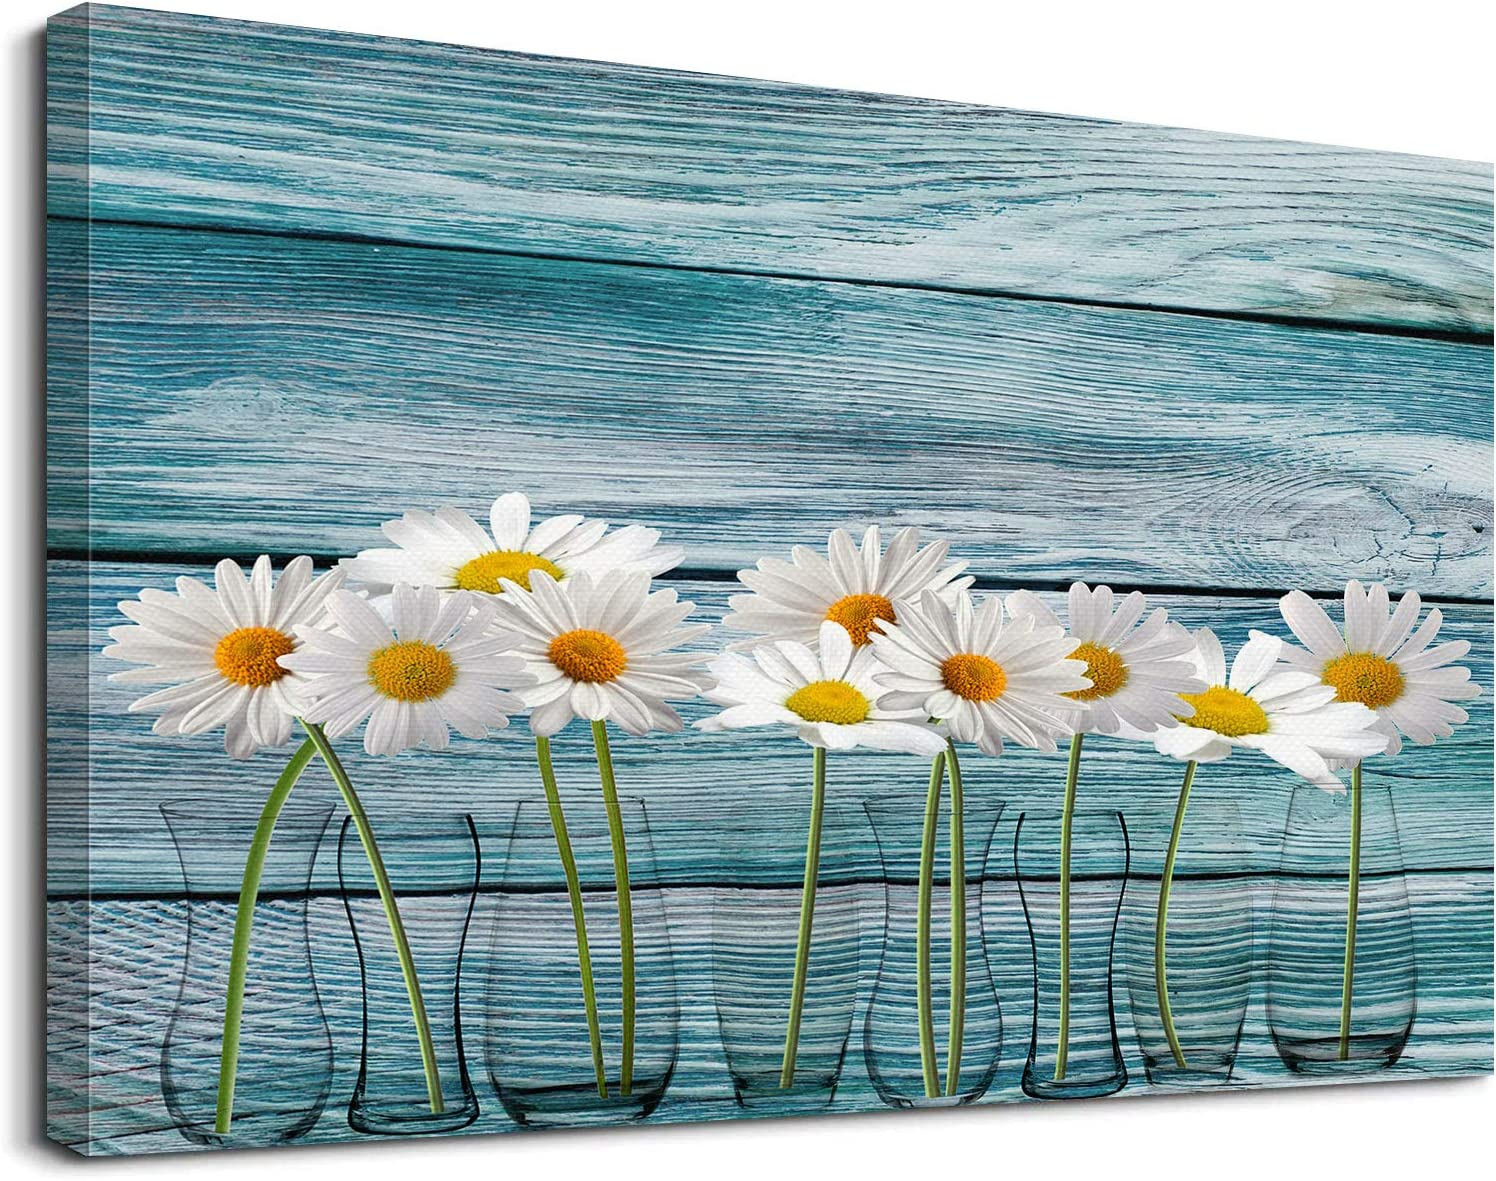 Vintage Flower Modern Floral Daisy Flower Vase Picture Canvas Wall Art for Living Room Bathroom Bedroom Home Decor 12x16 Inch Watercolor Painting Canvas Print Ready to Hang